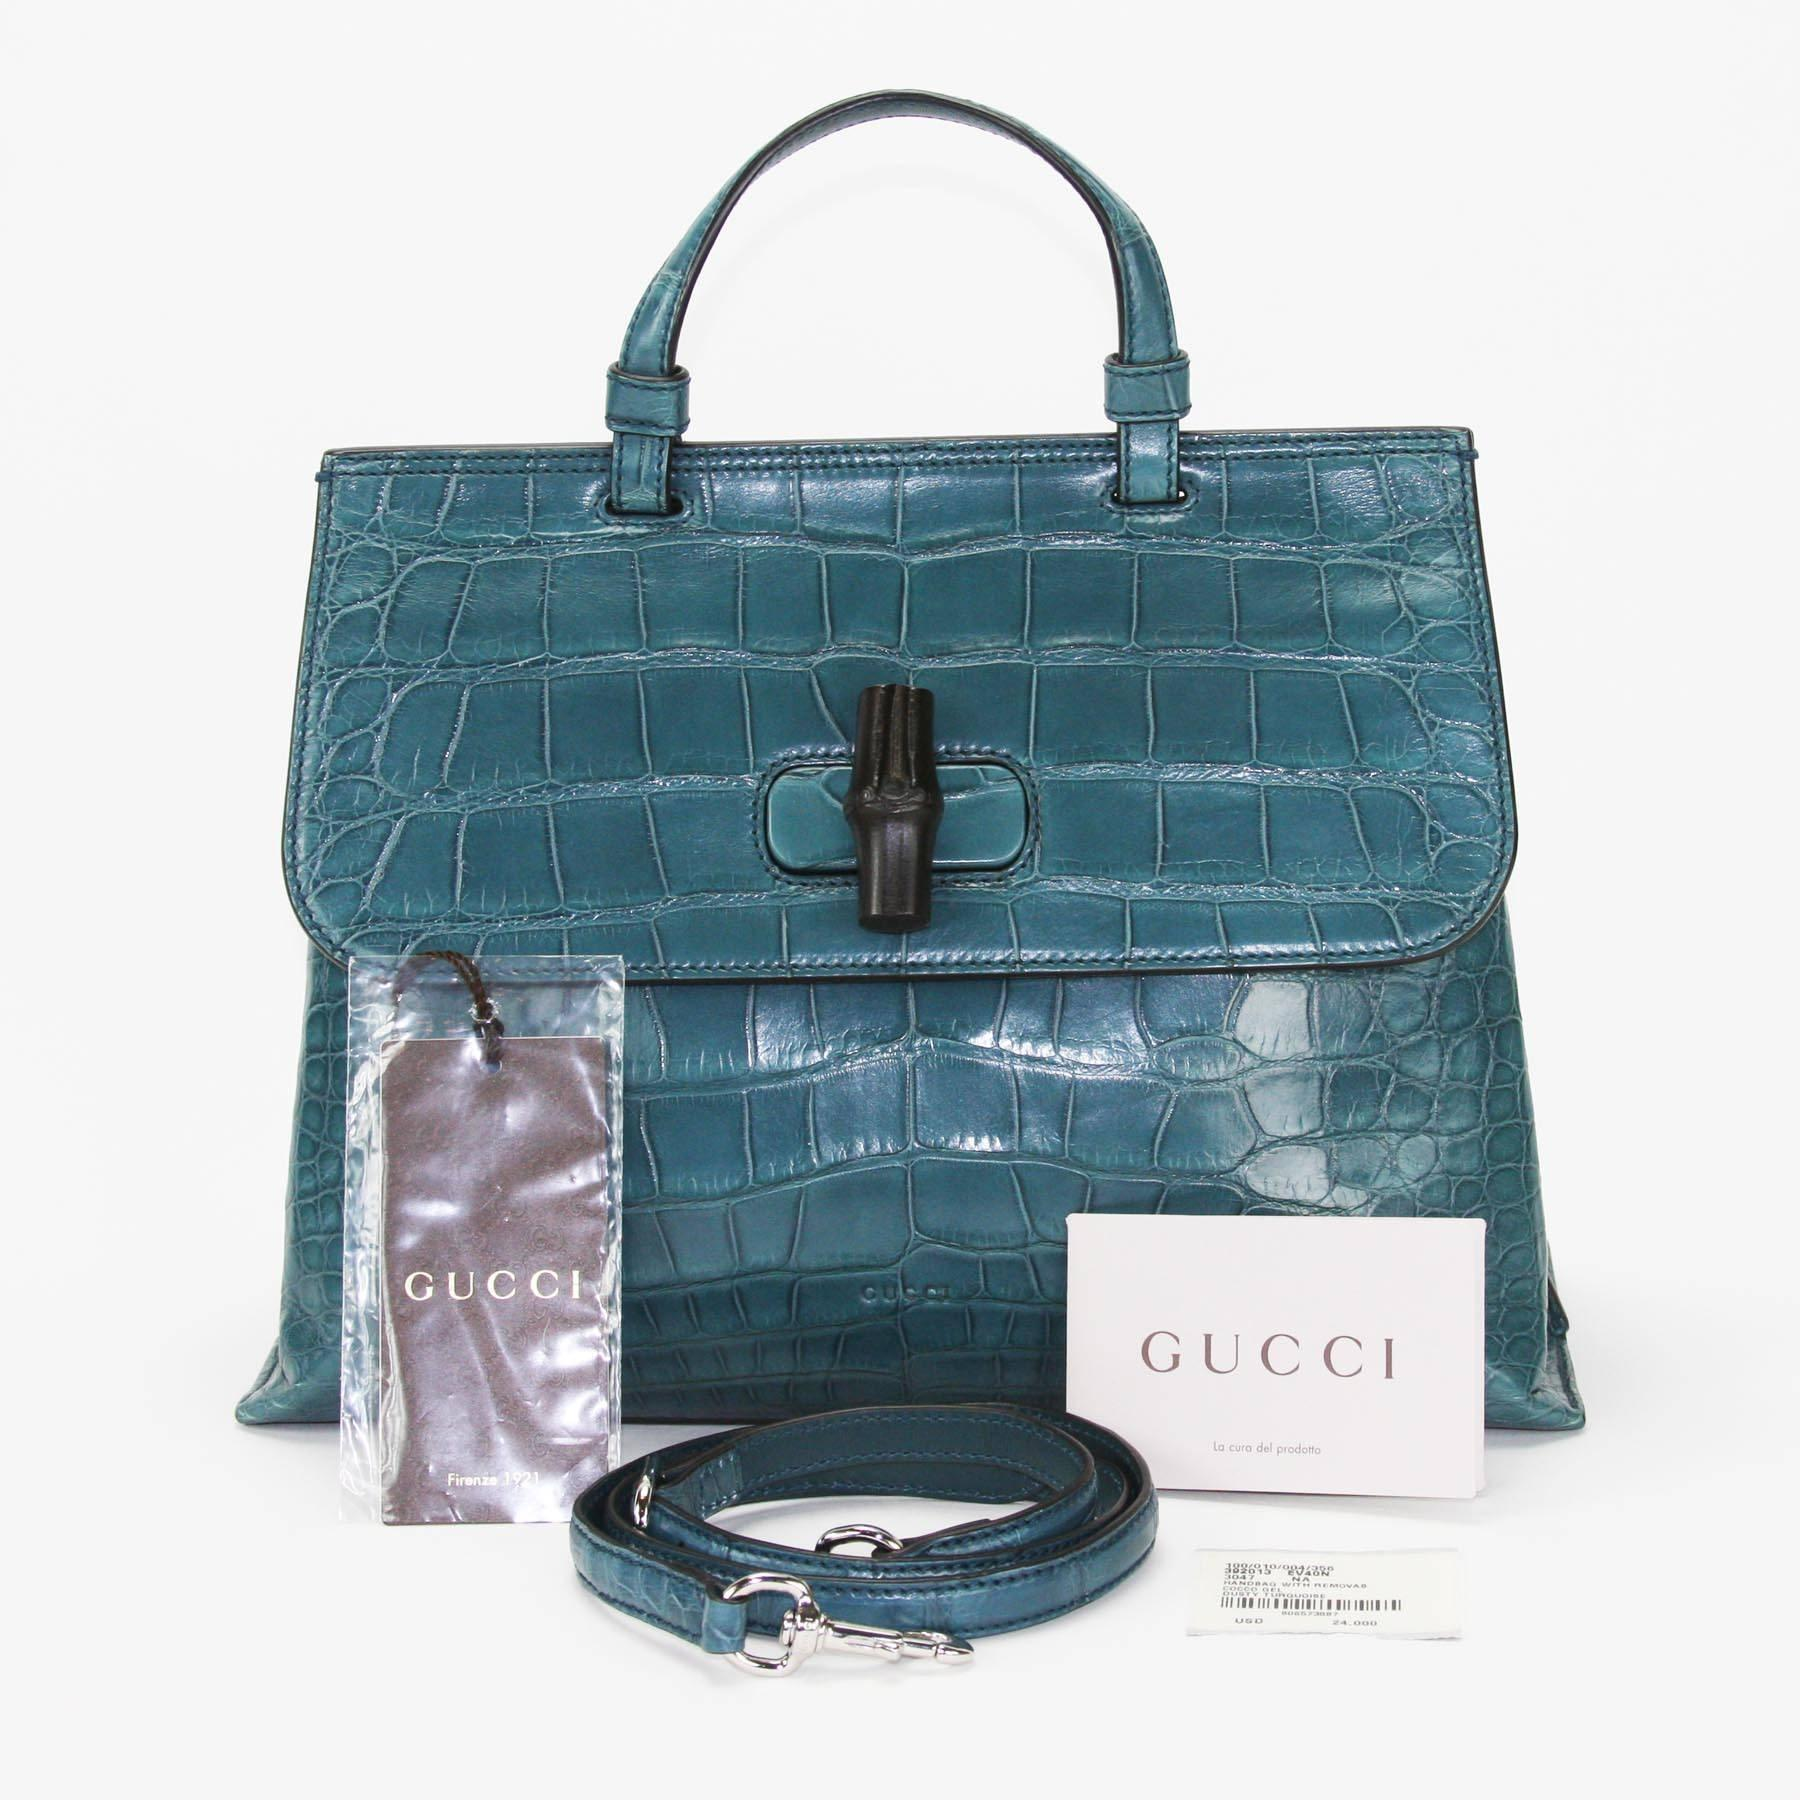 99e13e26bb72 New $24.000 Gucci Crocodile Dusty Turquoise Top Handle Shoulder Strap  Medium Bag For Sale at 1stdibs